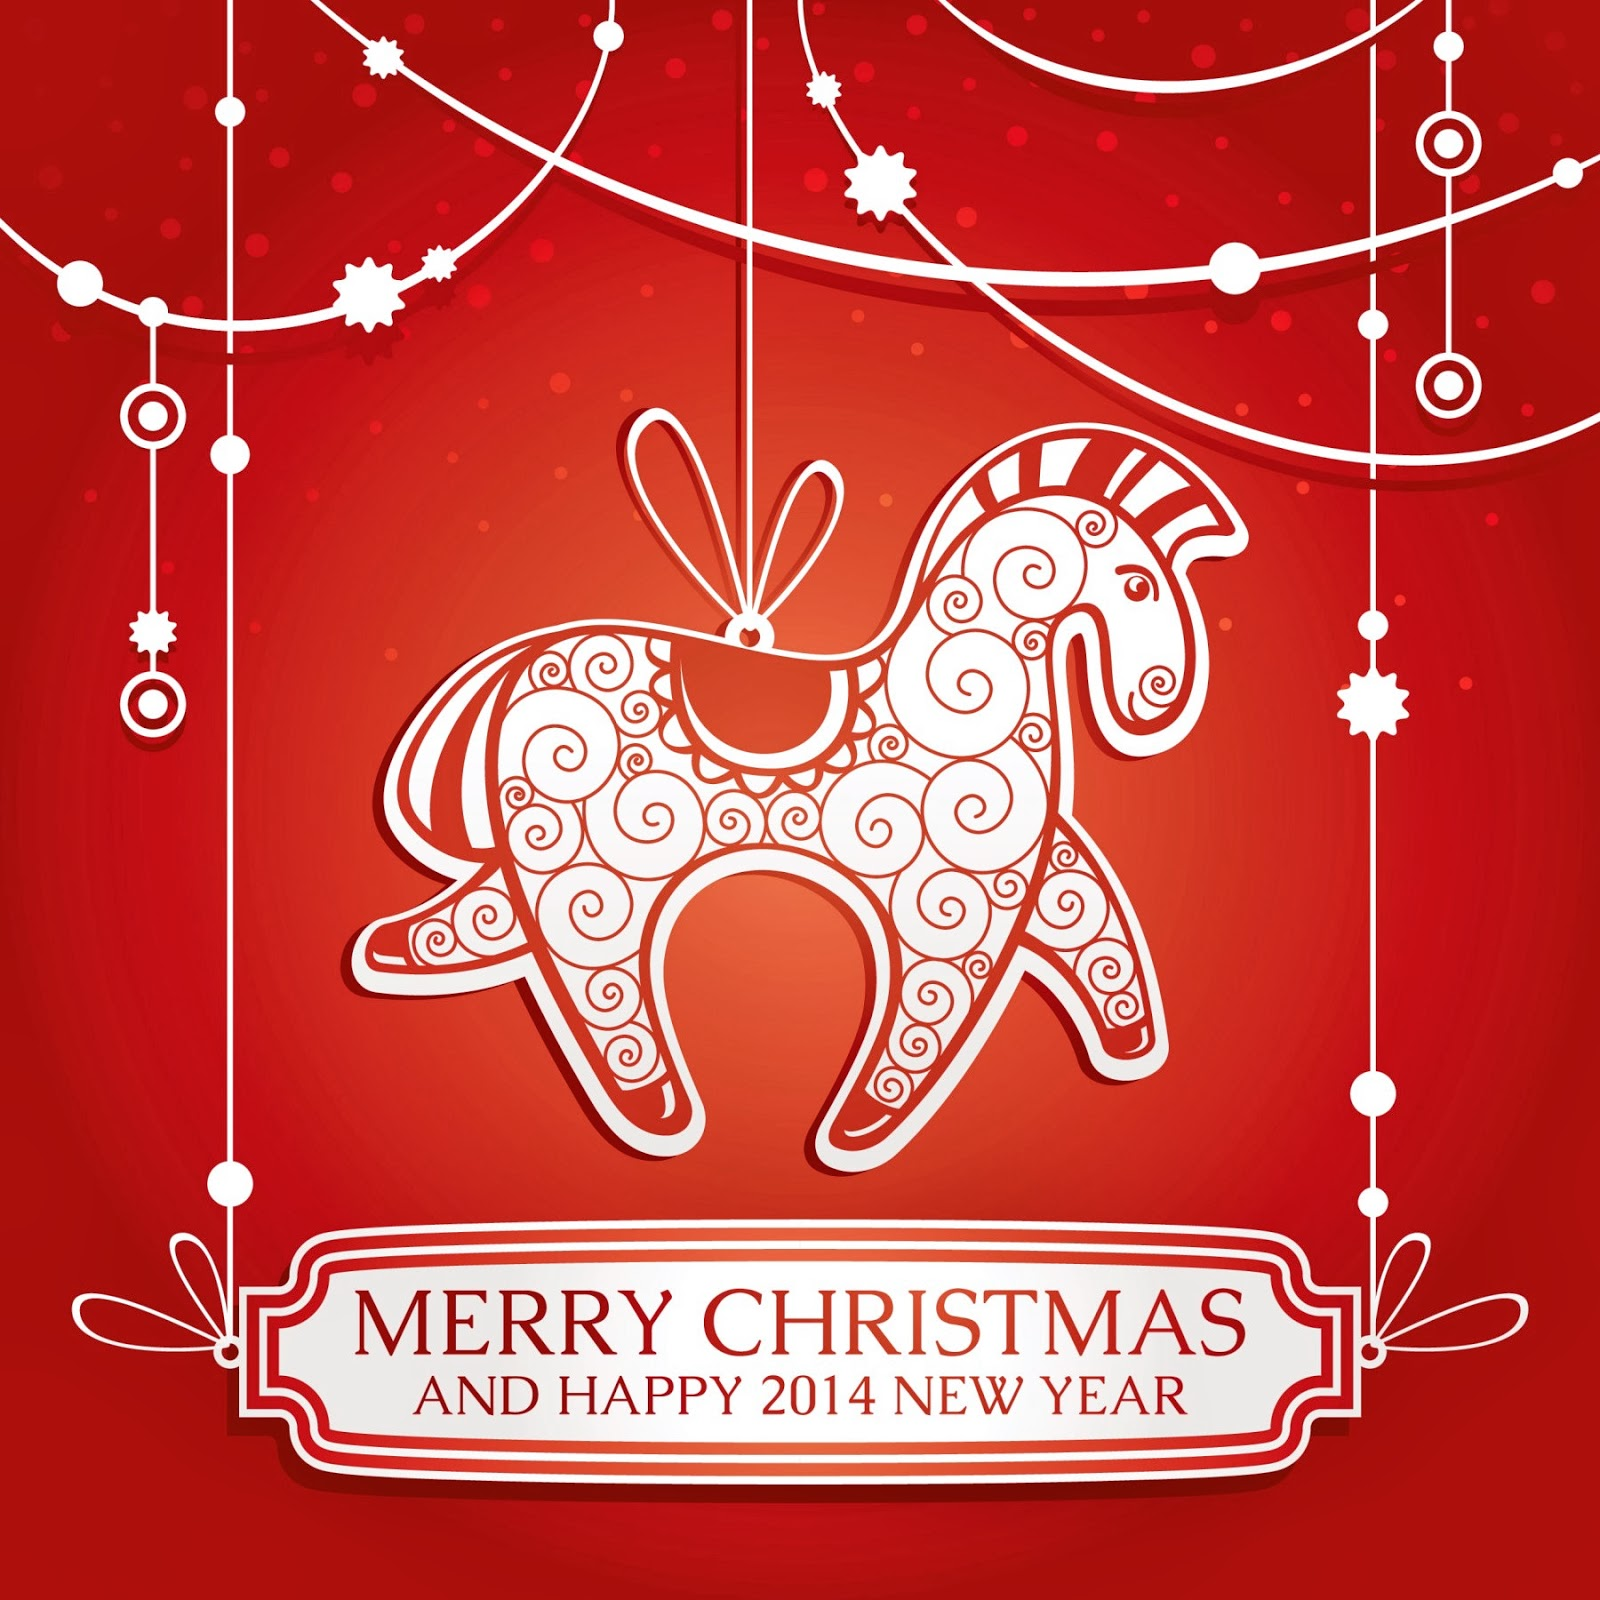 Merry Christmas And Happy 2014 New Year Wallpaper